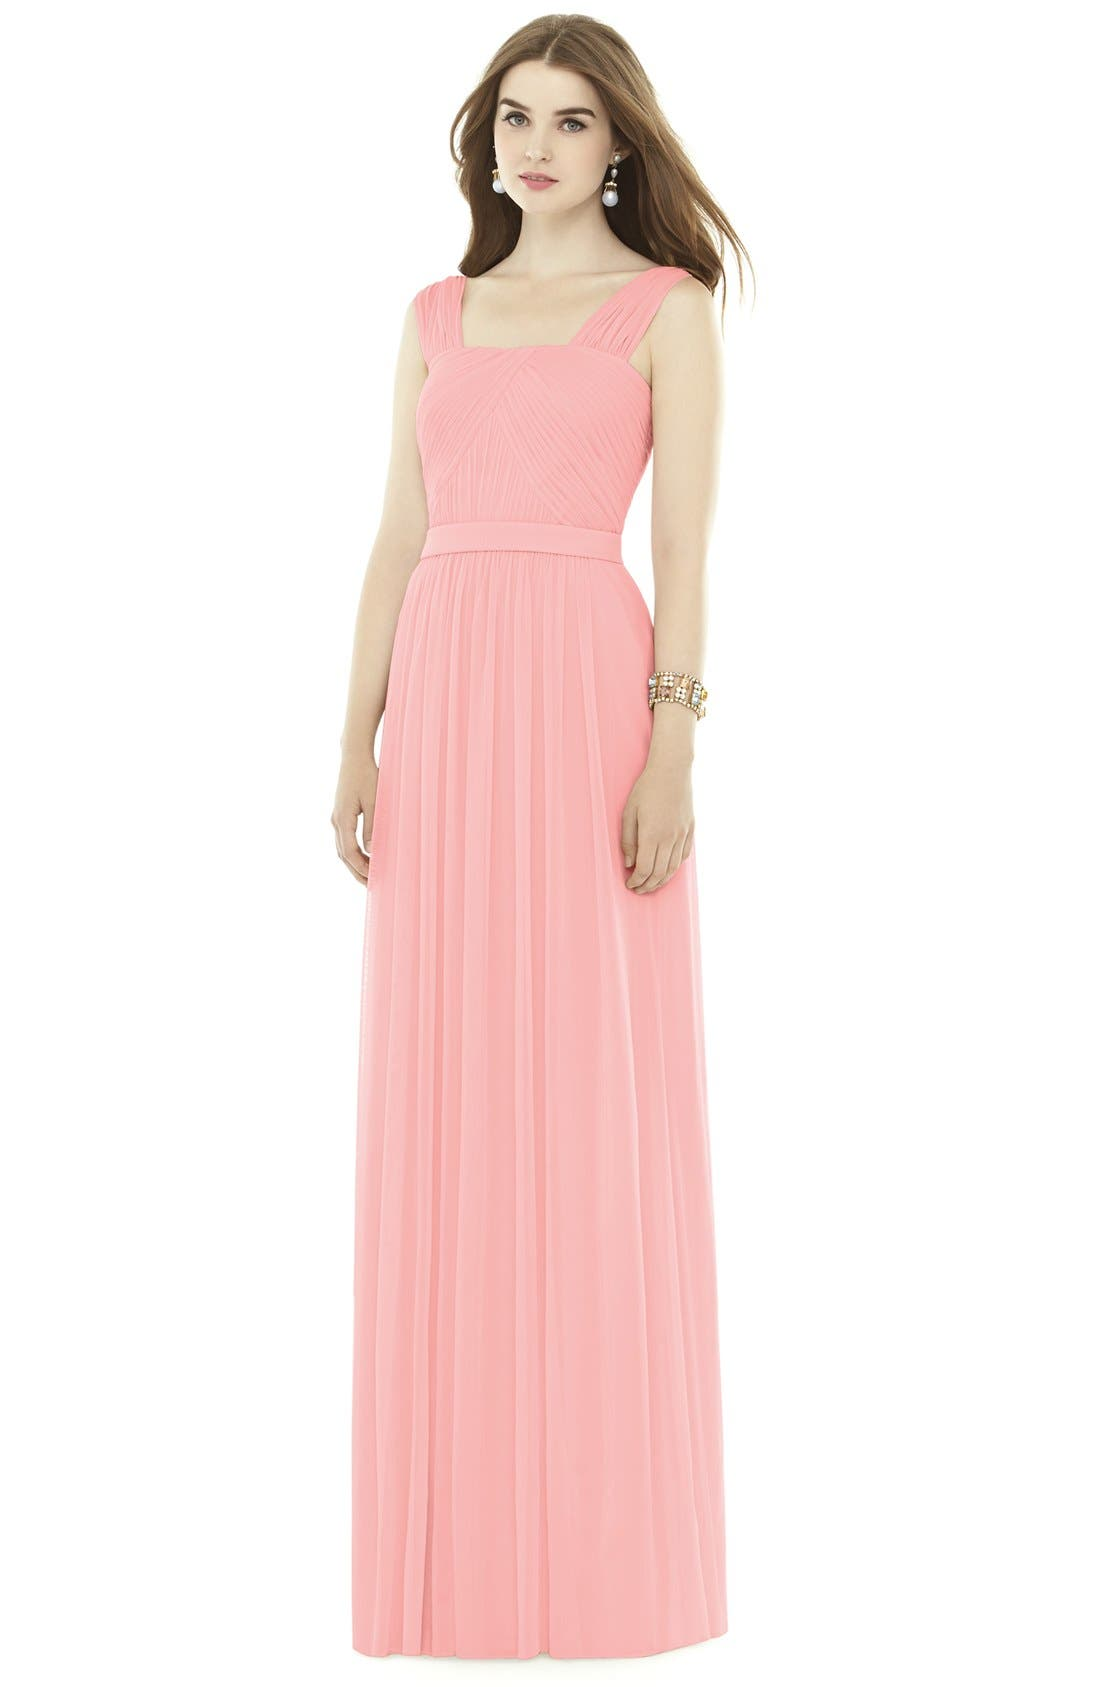 ALFRED SUNG Pleat Chiffon Knit A-Line Gown with